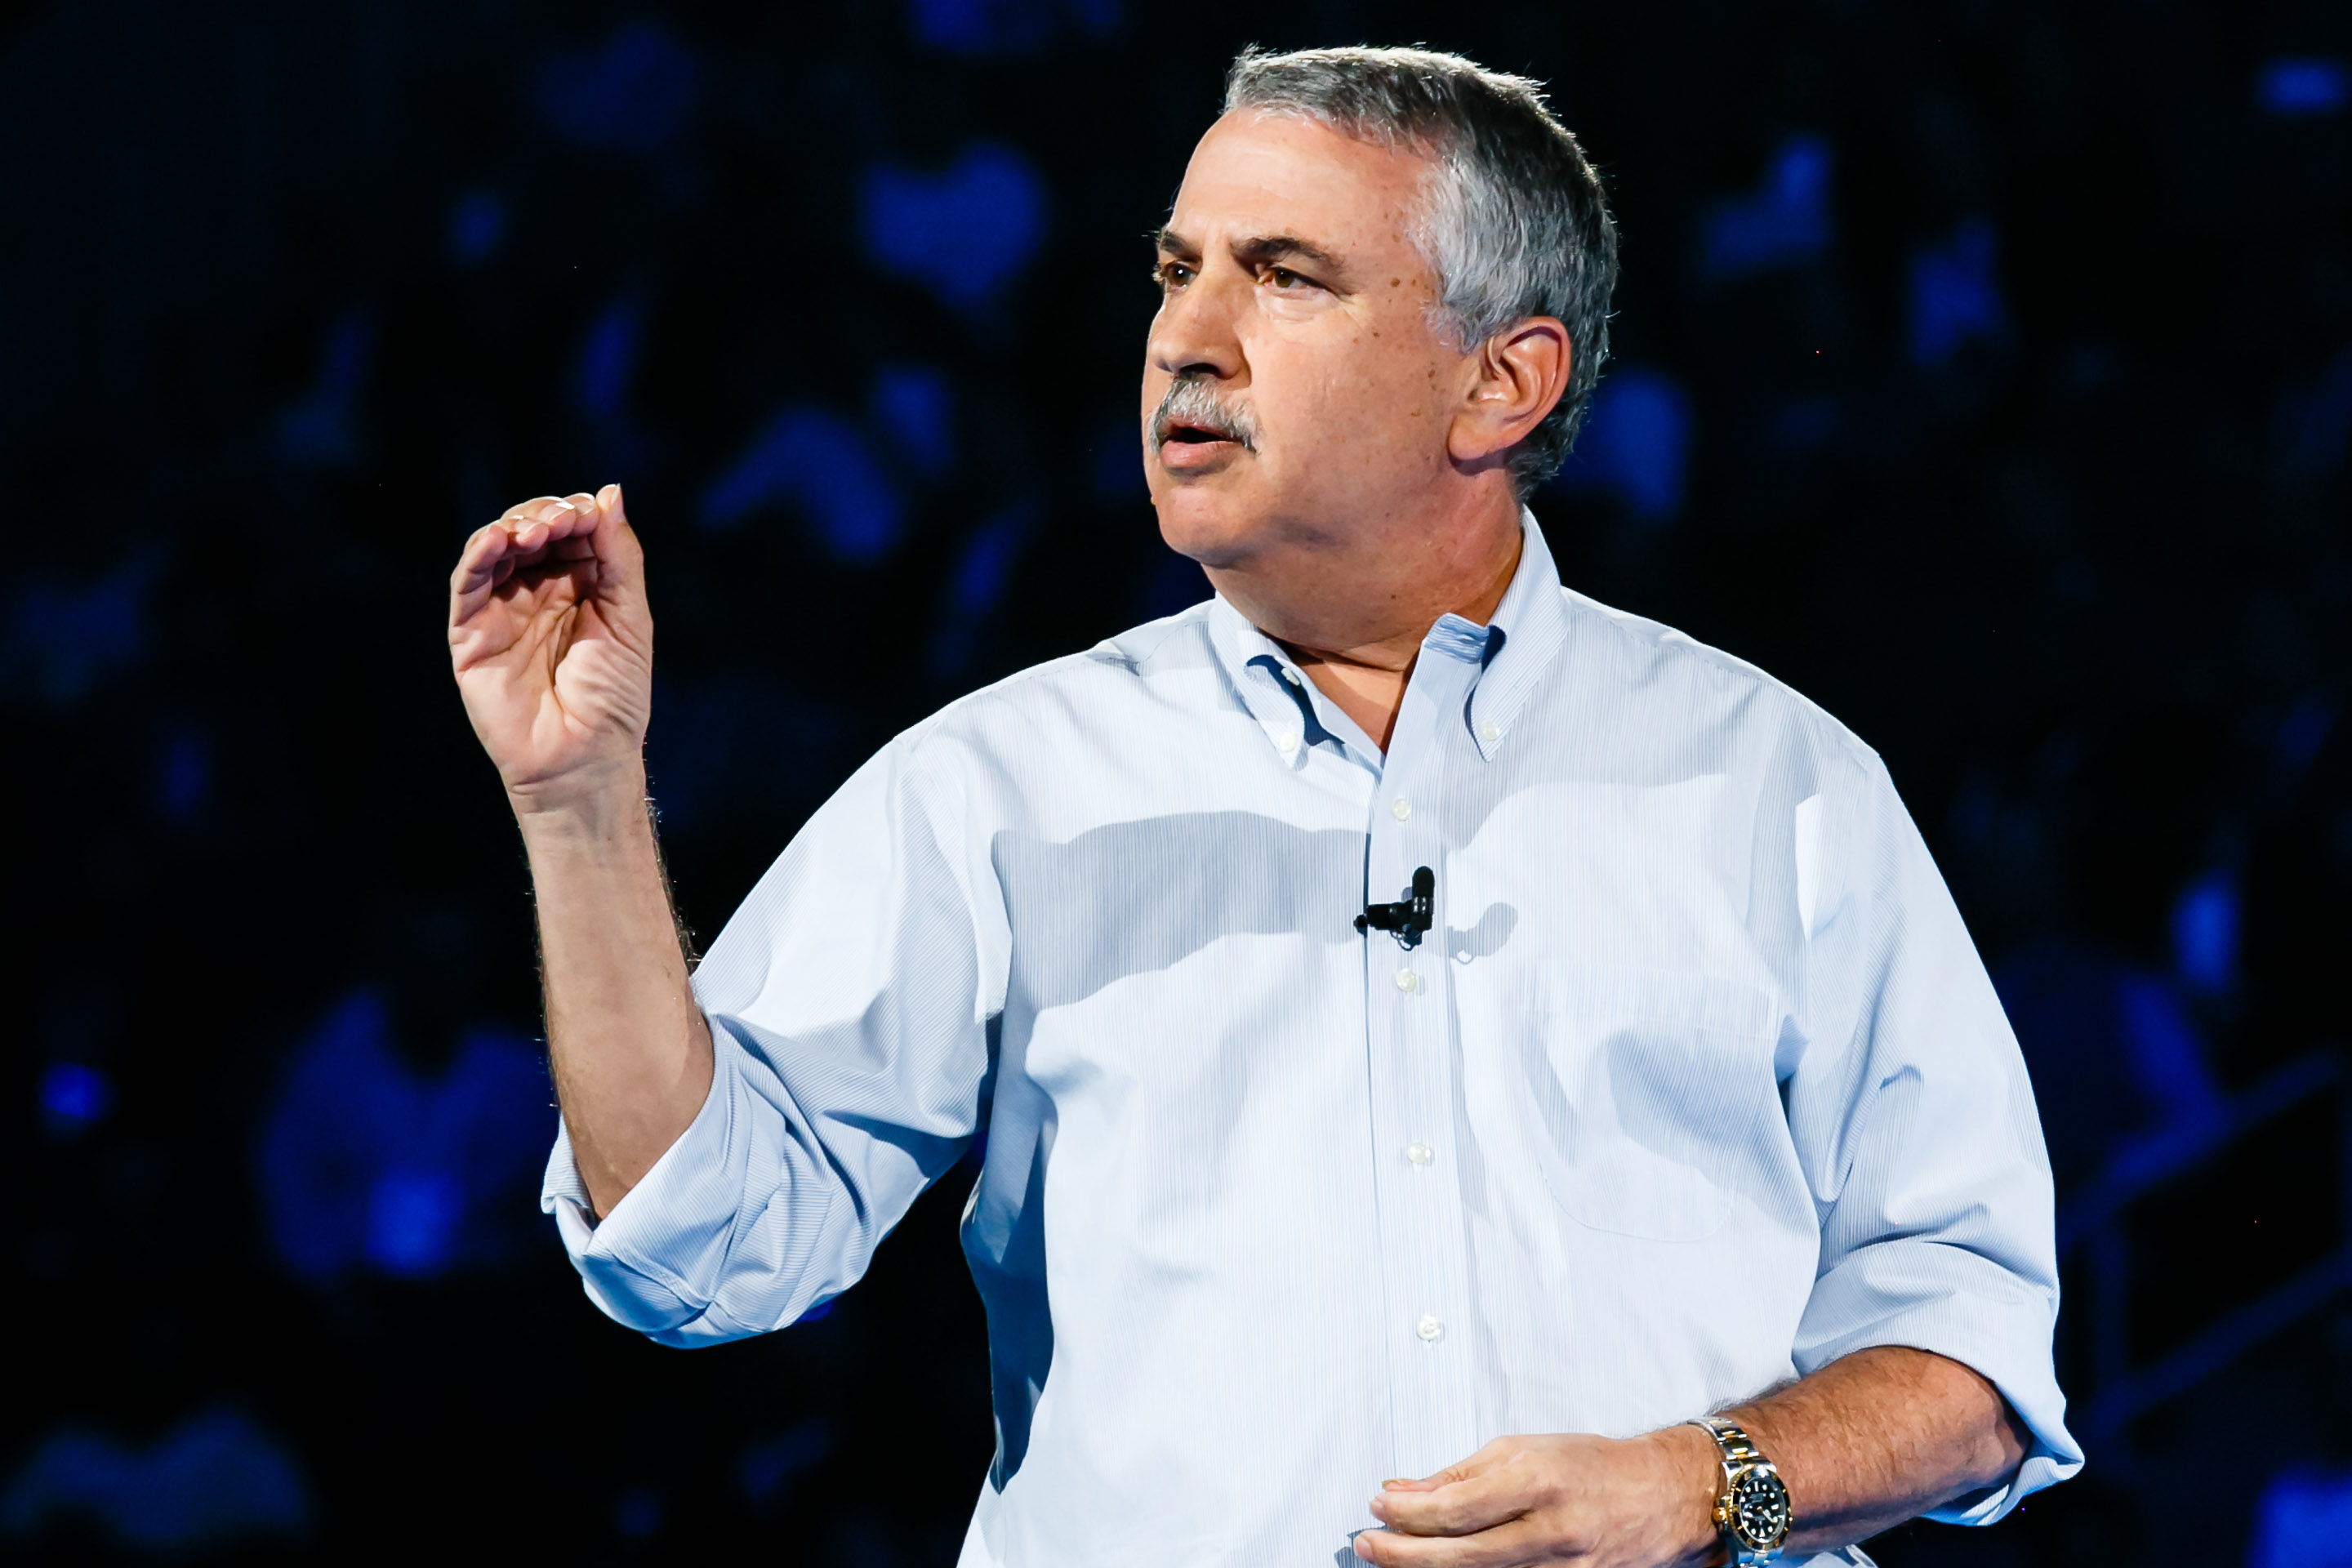 20161025095139 3673 IBM WOW 2016 OPENING SESSION THOMAS FRIEDMAN